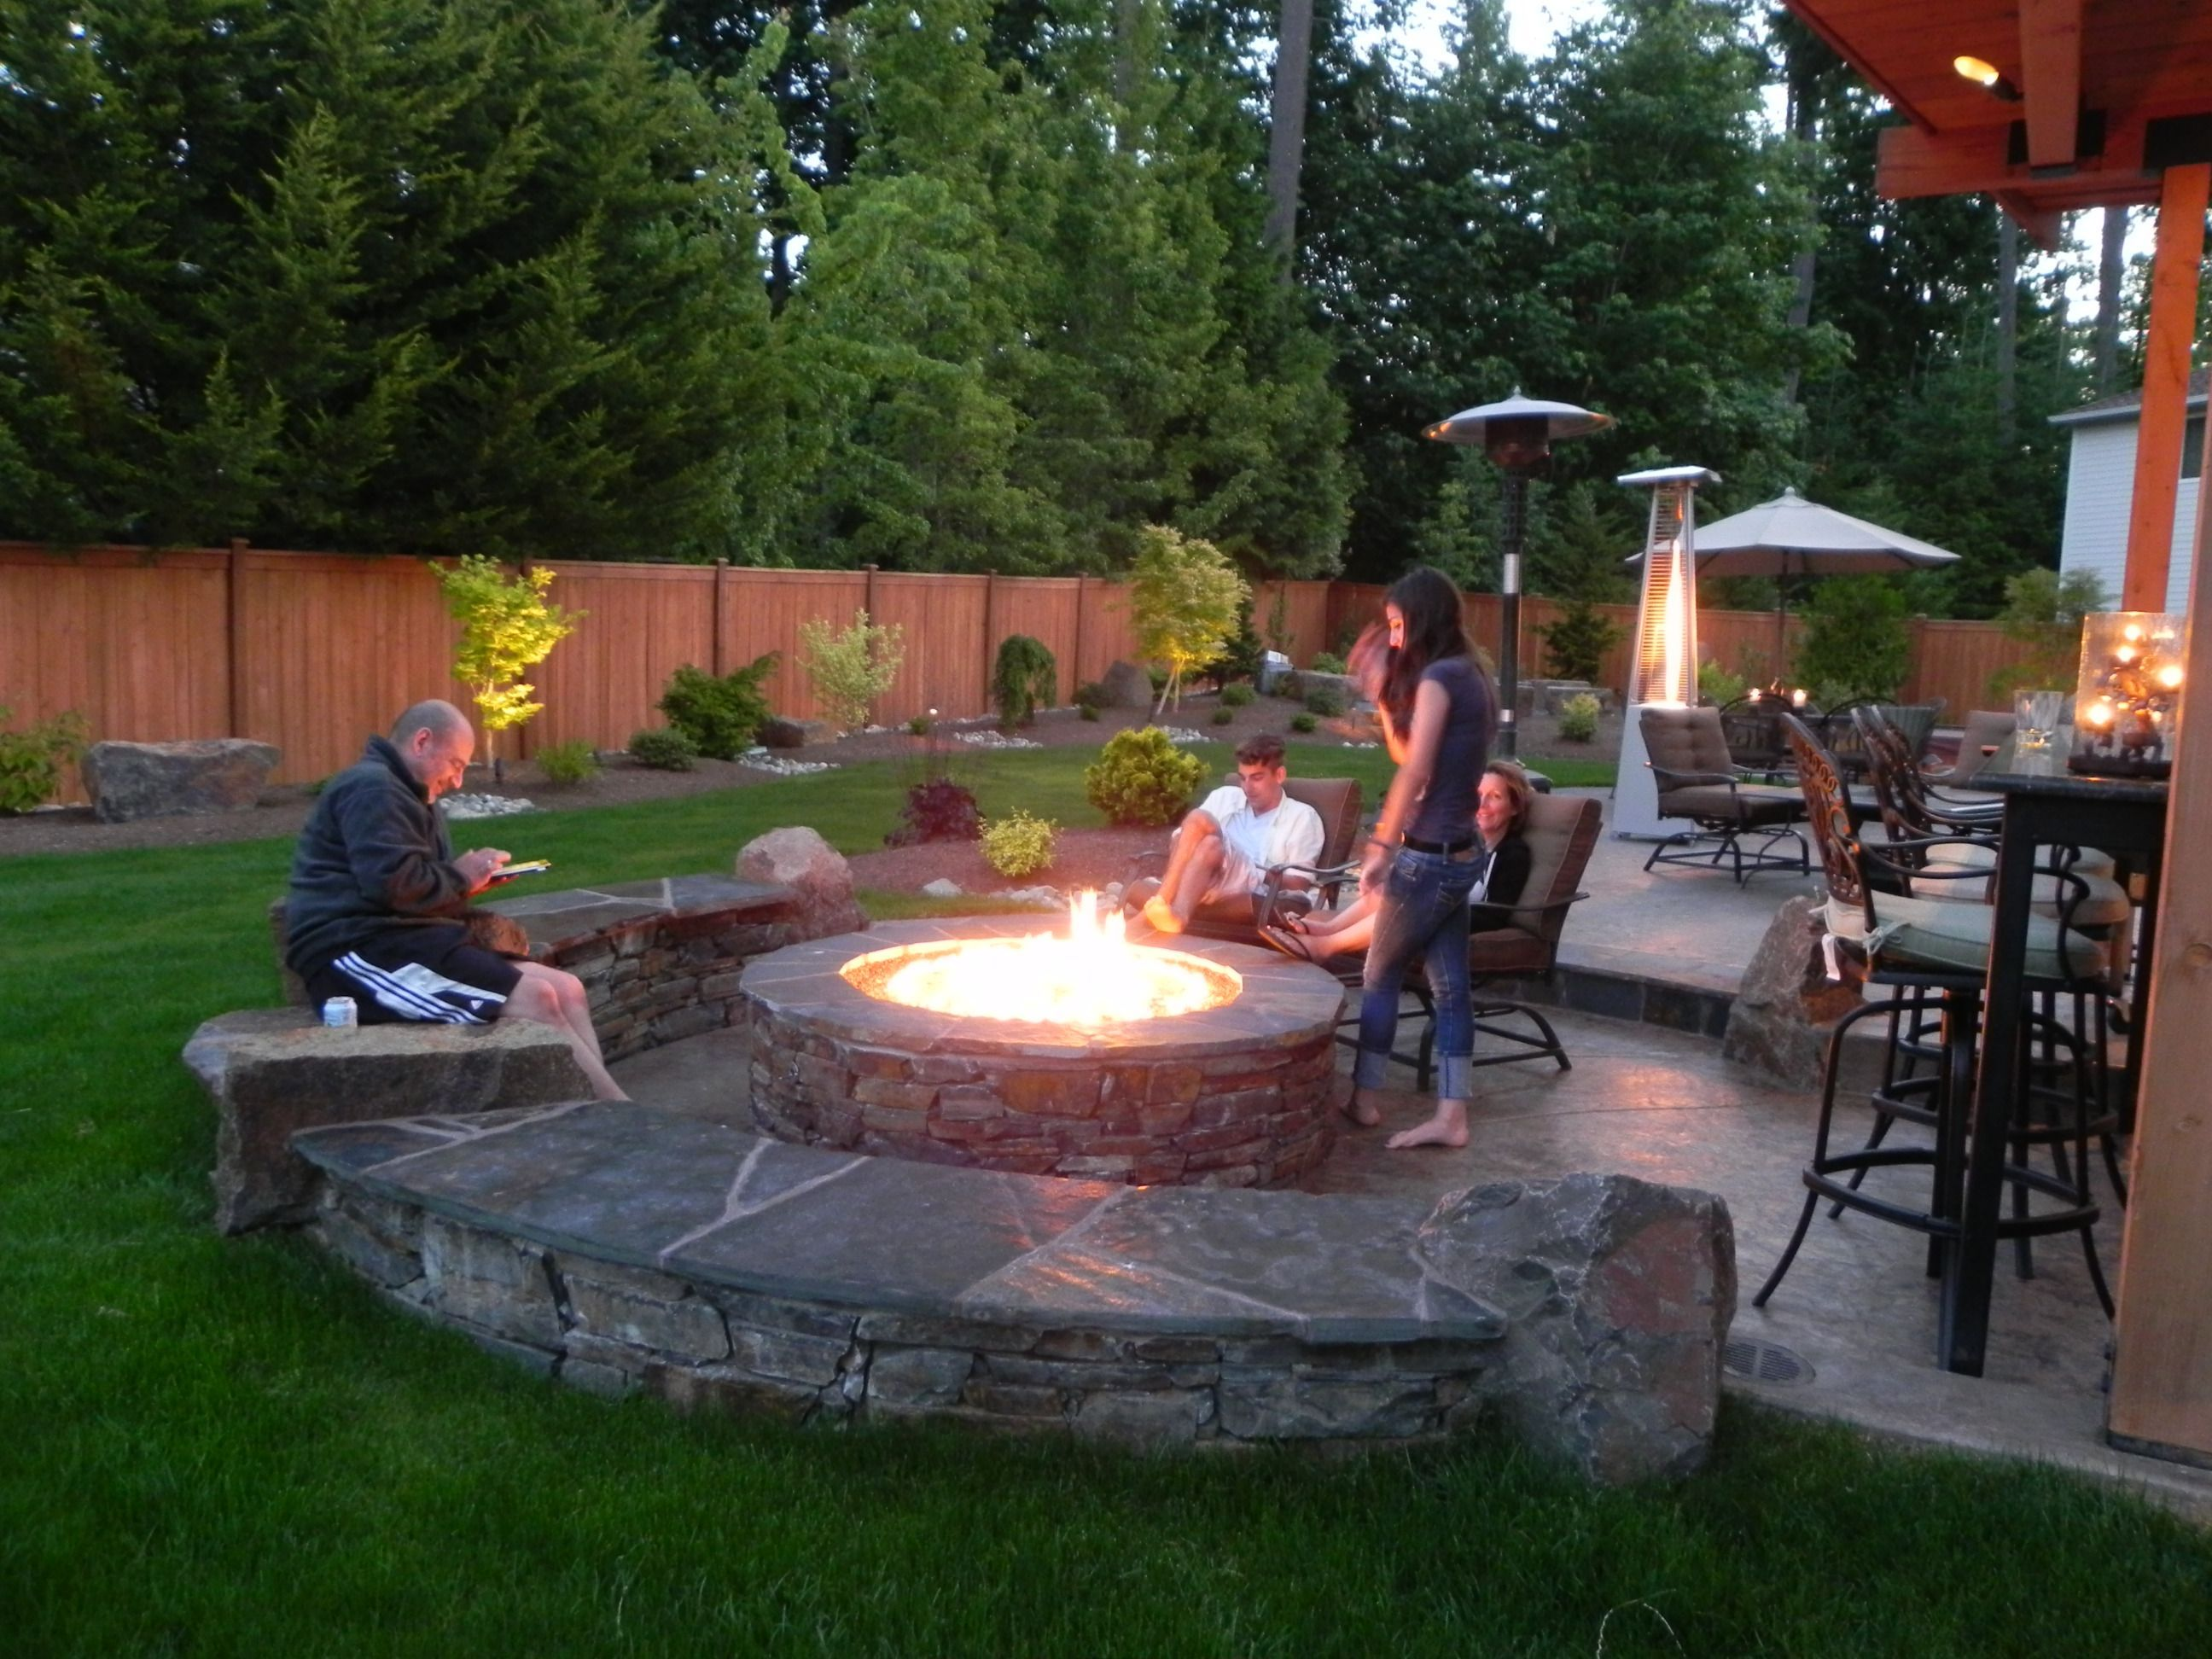 garden design with diy backyard landscaping and wood patio ideas fire pit homedreamworks pw courtyard gardens - Fire Pit Design Ideas